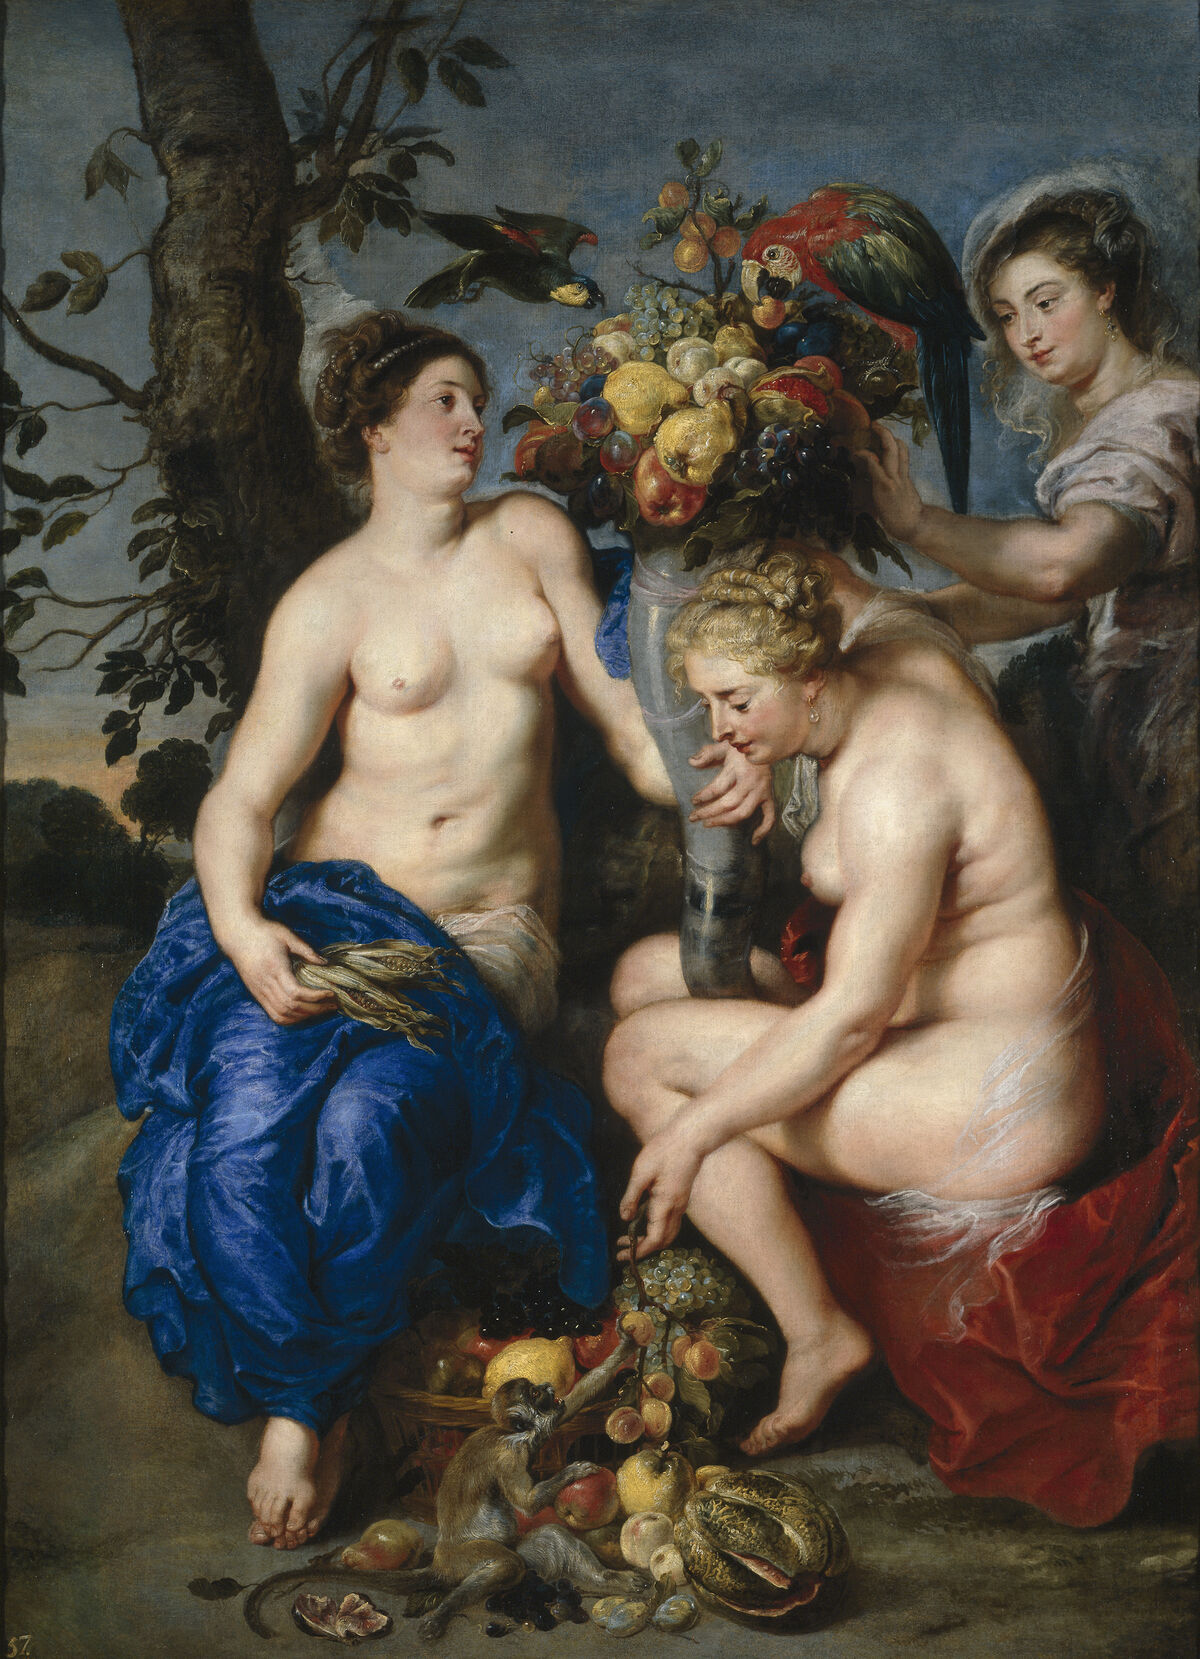 Peter Paul Rubens, Ceres with two Nymphs,1615 - 1617l. Image via Wikimedia Commons.